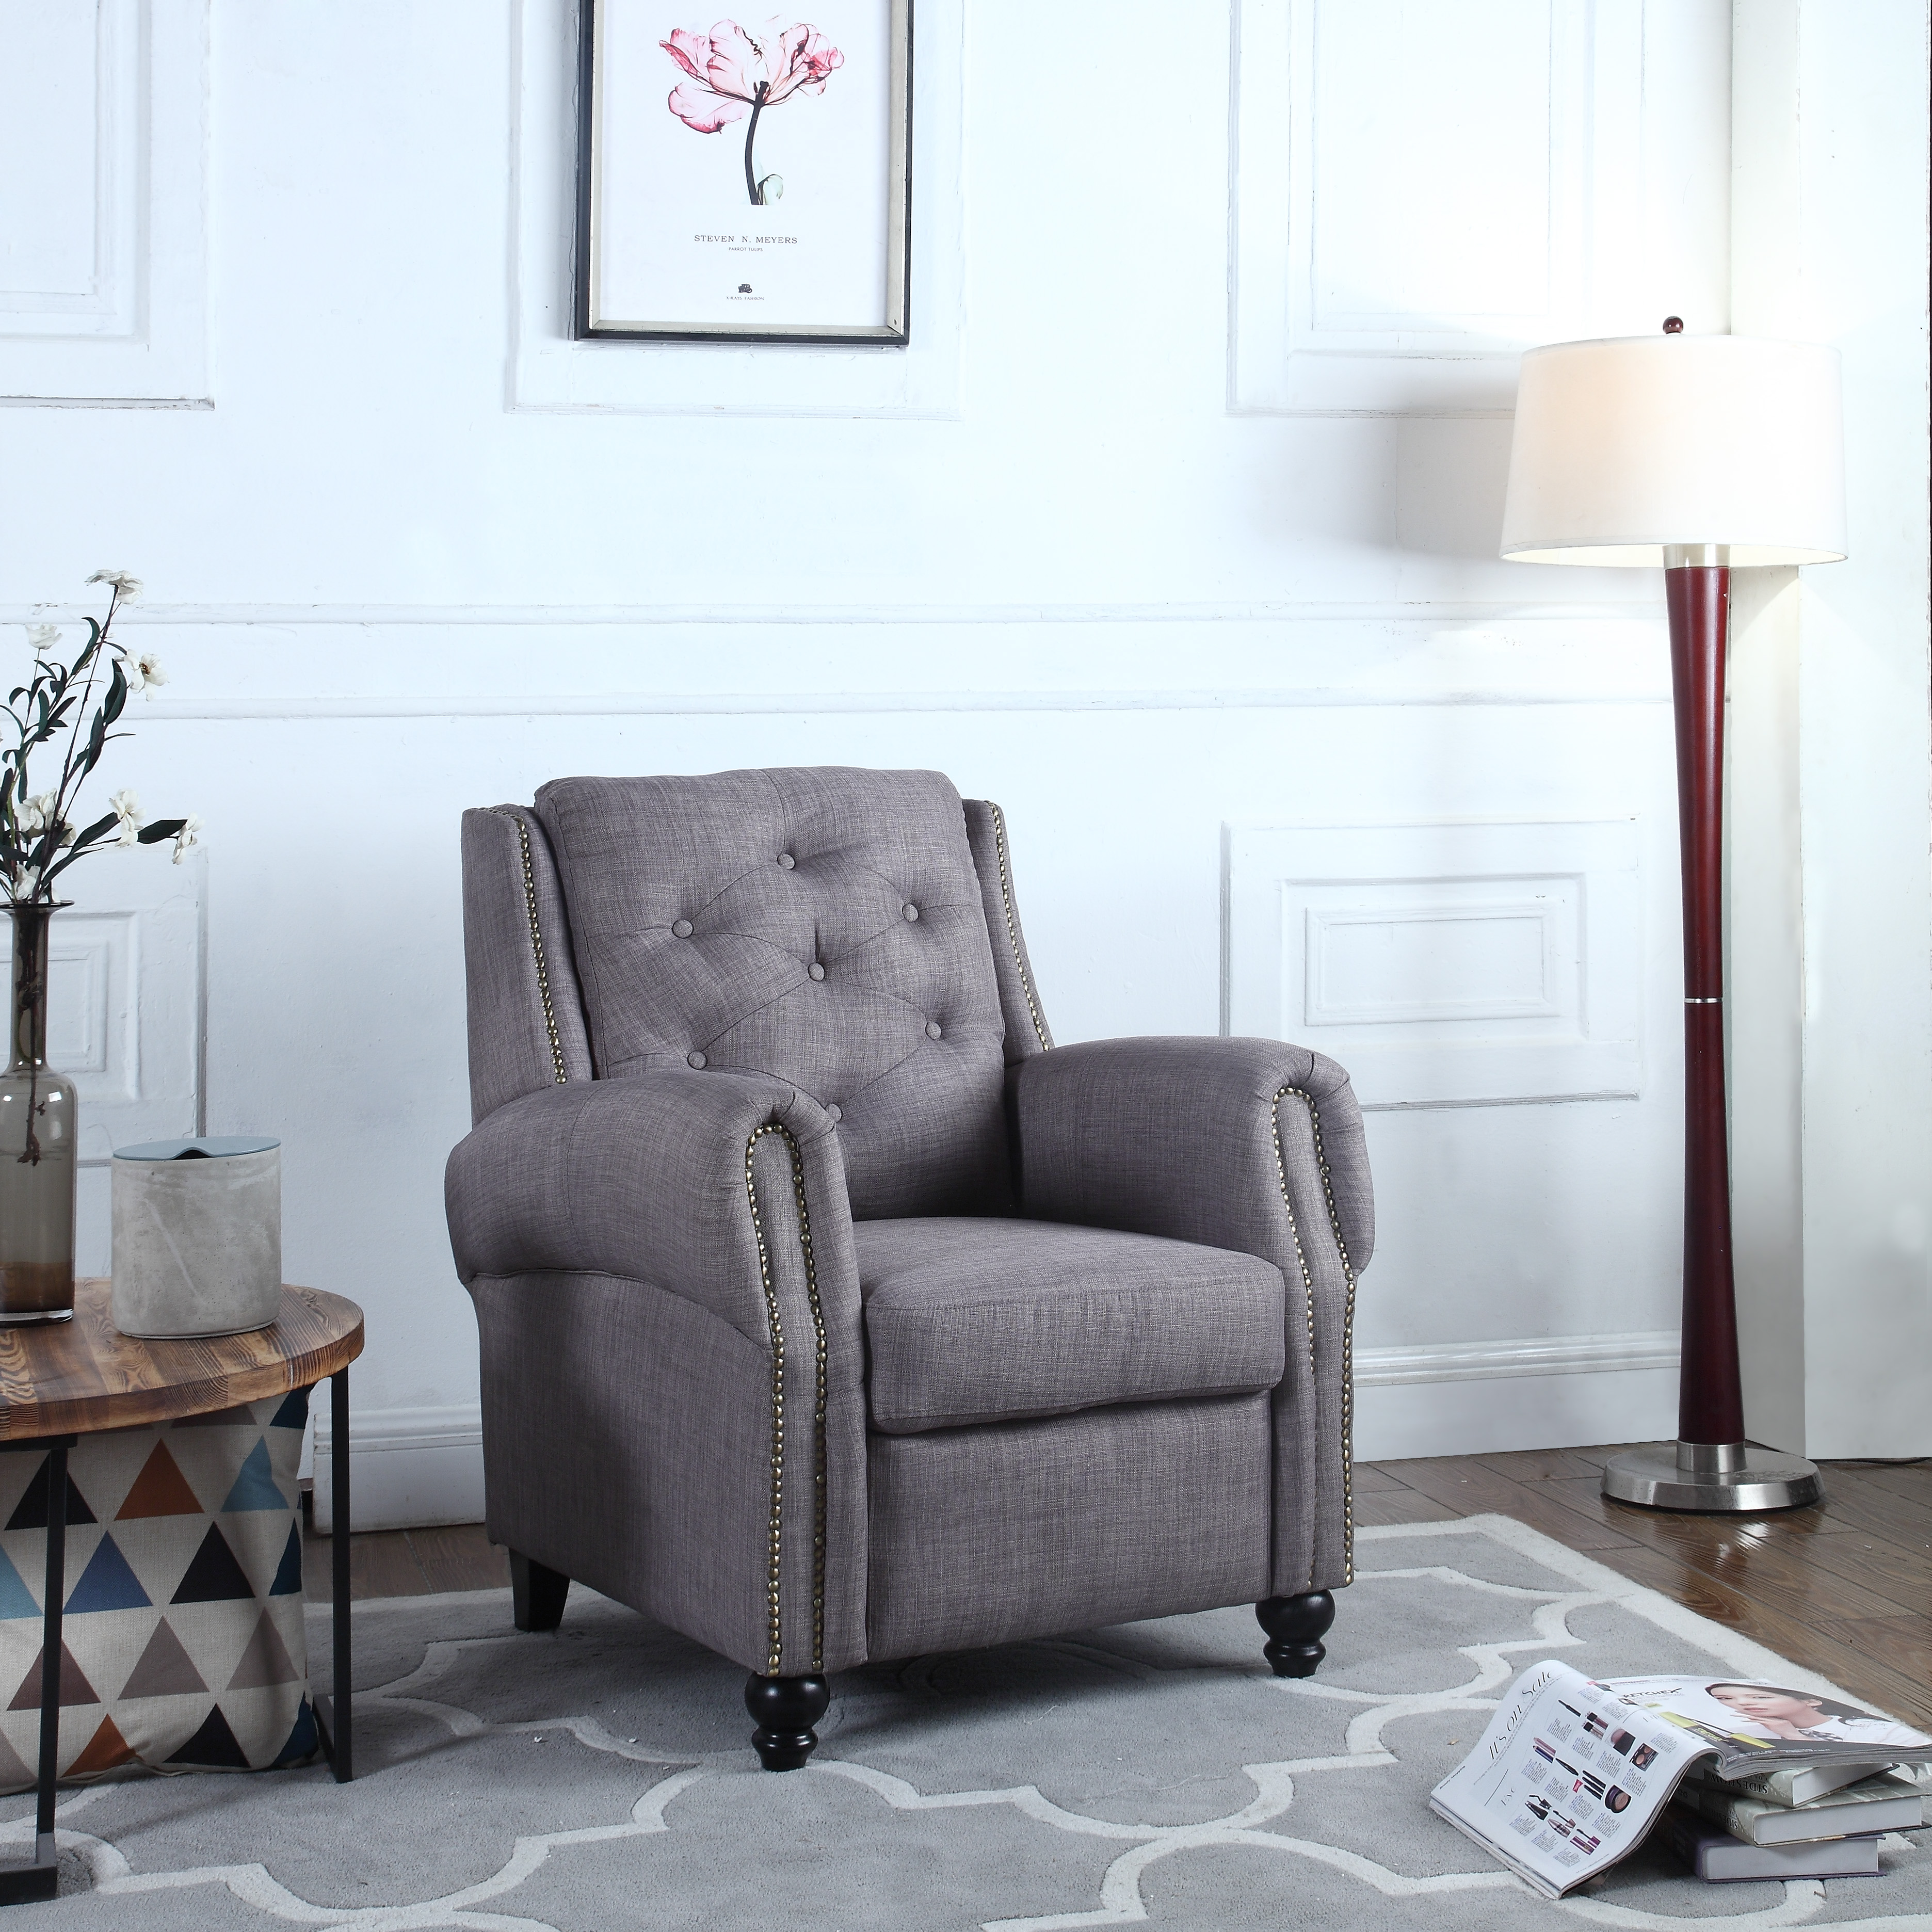 Traditional Tufted Scroll Arm Chesterfield Linen Fabric Accent Chair, Living Room Armchair... by Casa Andrea Milano